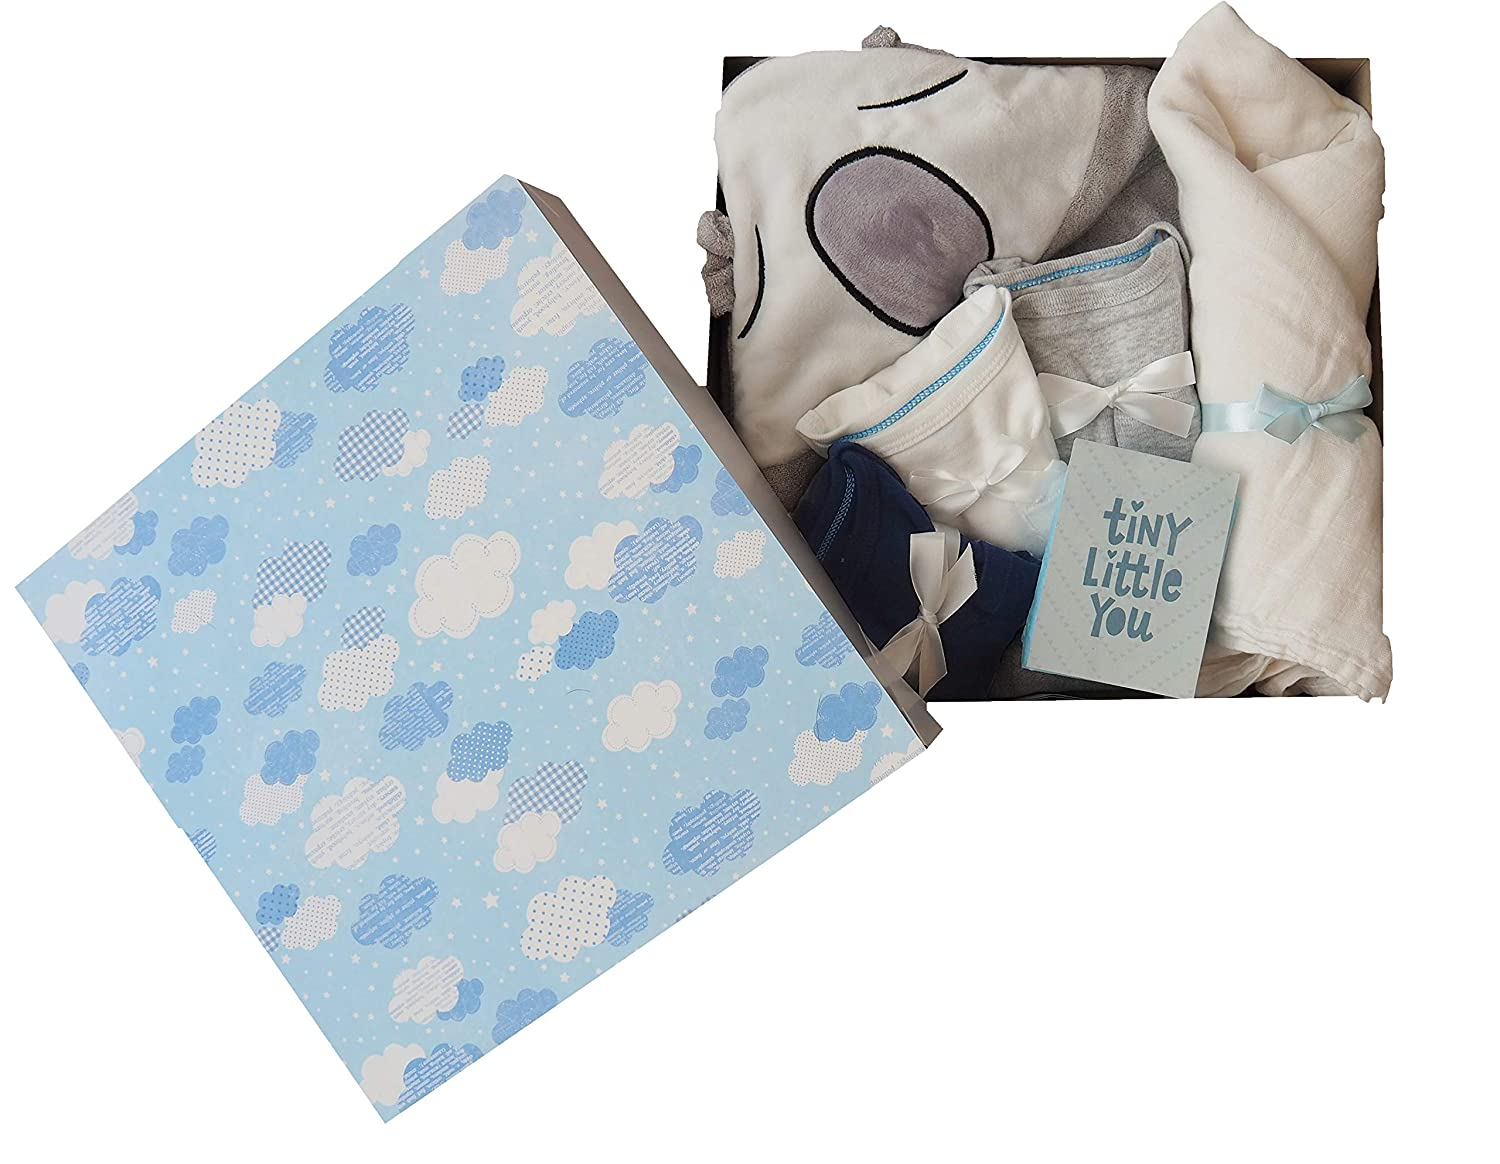 Baby Boy Shower Gift Set, Newborn Essentials Gift Basket - Organic Bamboo Baby Hooded Towel, Organic Bamboo Swaddle, Newborn Onesies, and a Card, 5 Pieces, Free Delivery, from ZozO (Blue-White) 81Kusad2LbL